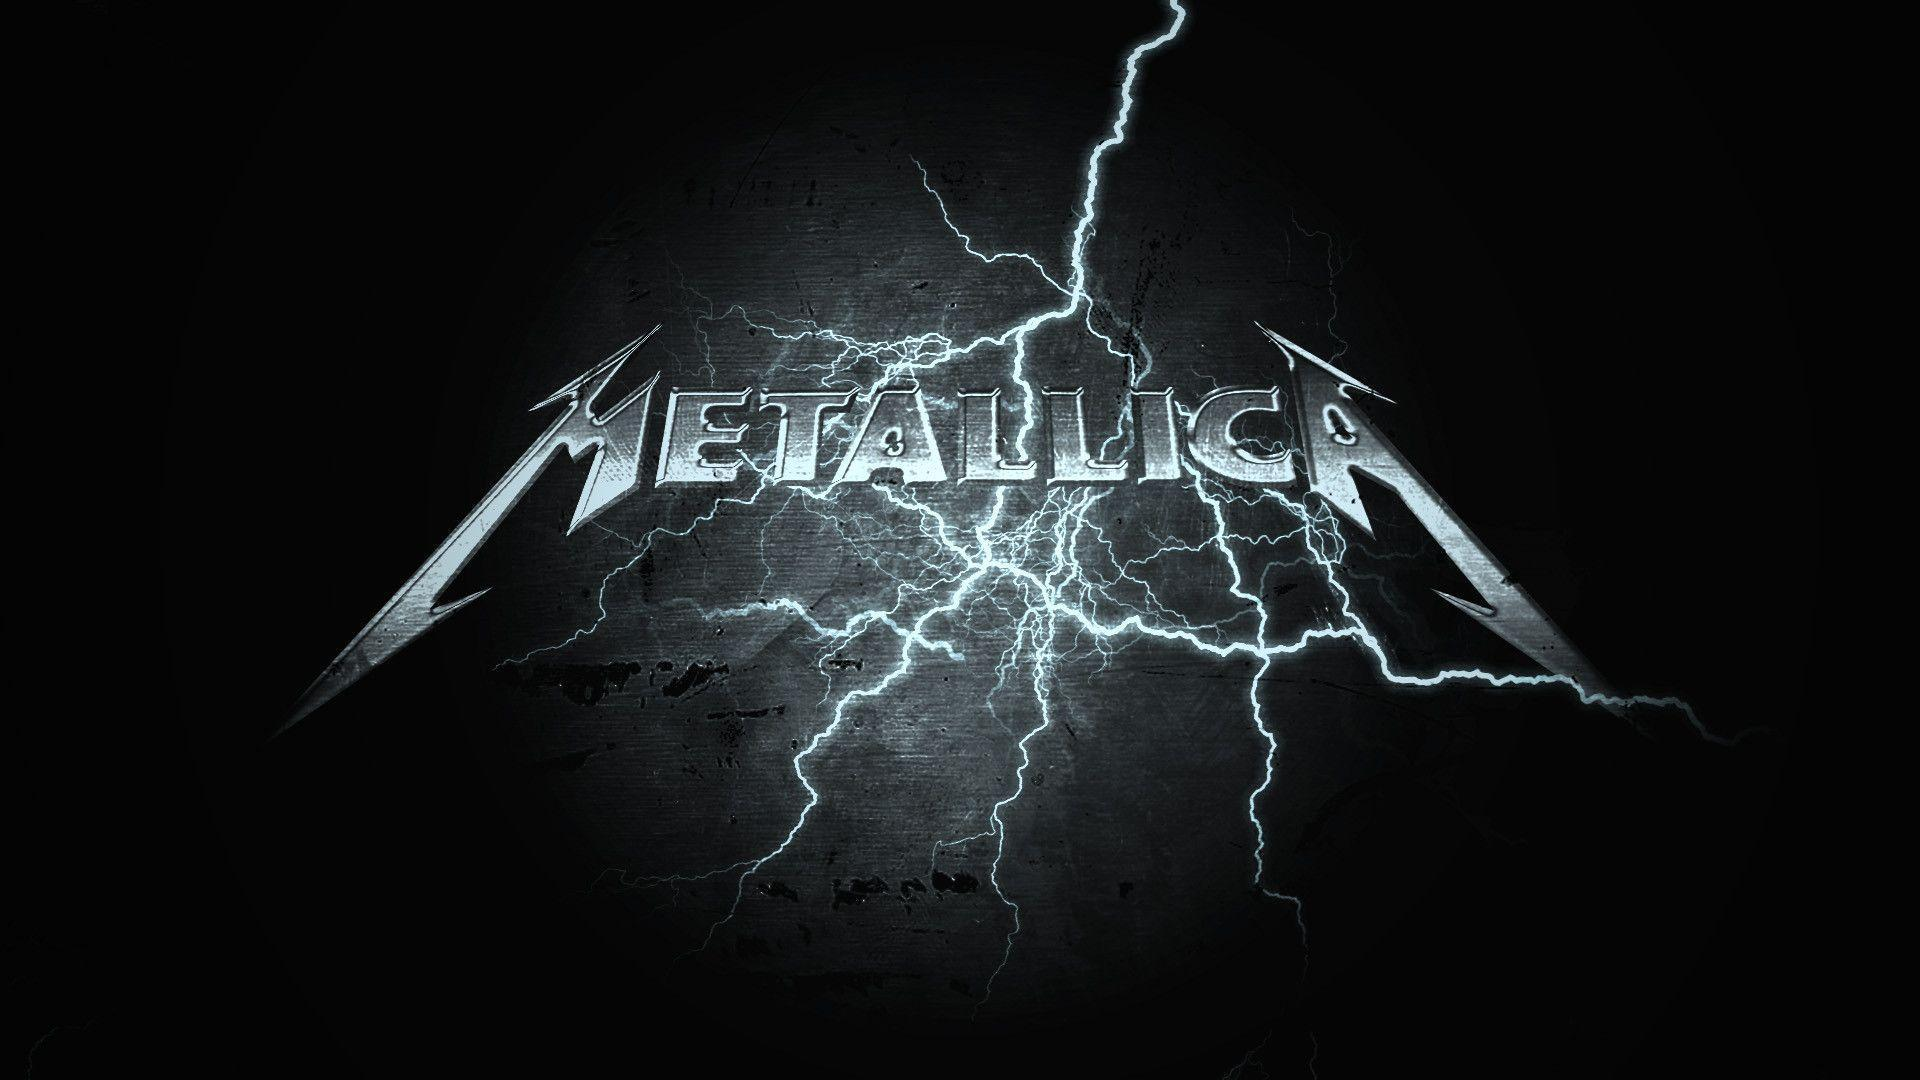 Metallica Backgrounds - Wallpaper Cave